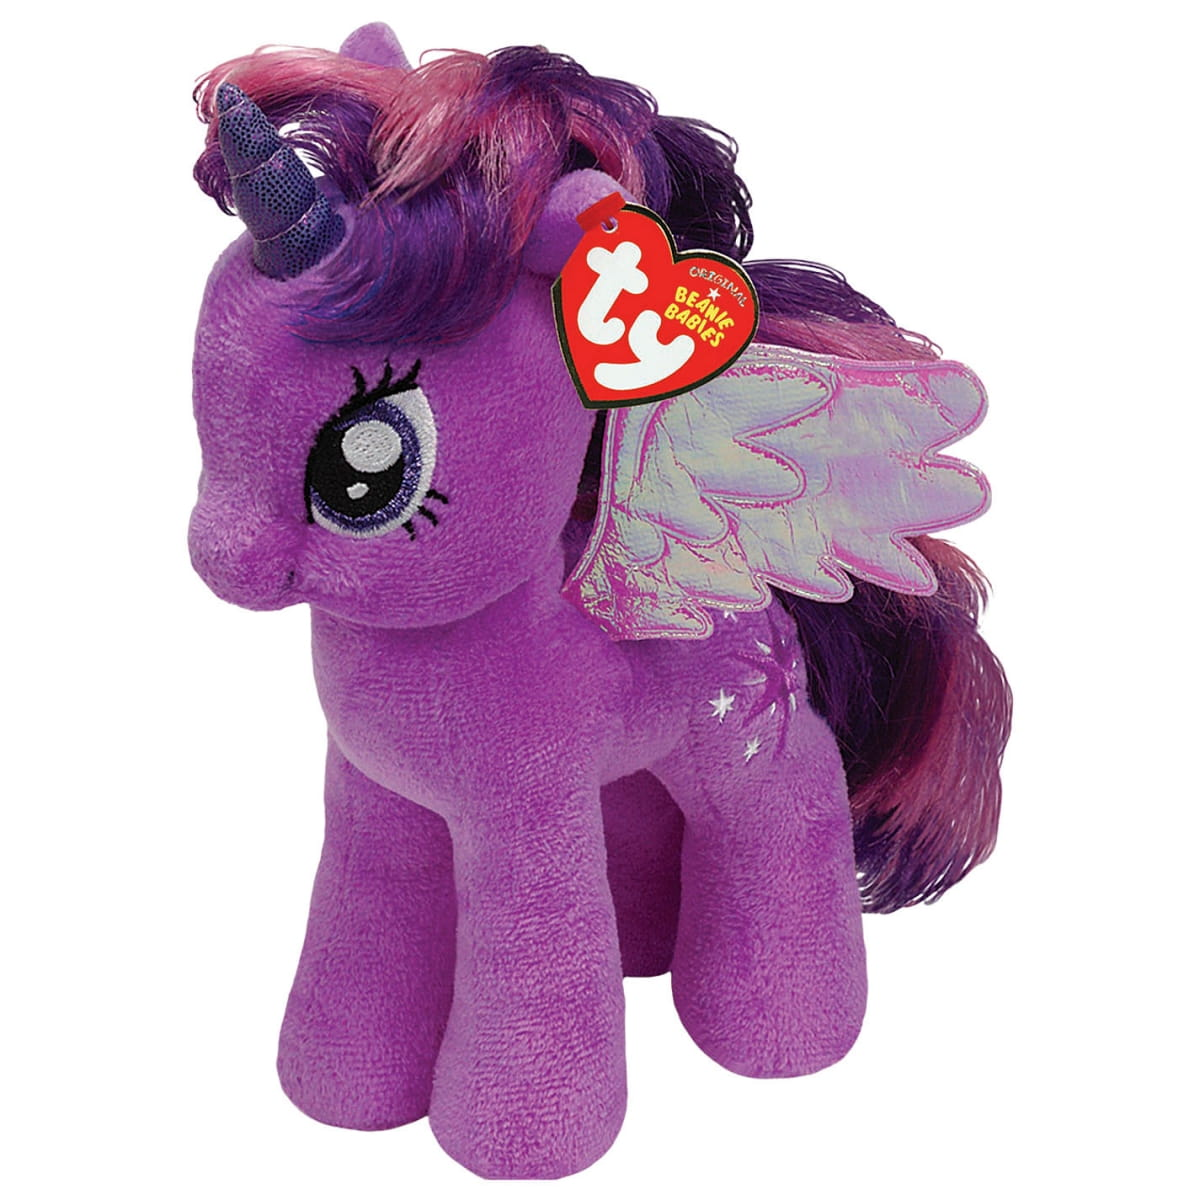 Игровой набор My Little Pony Twilight Sparkle Твайлайт Спаркл  20 см (TY) - My Little Pony